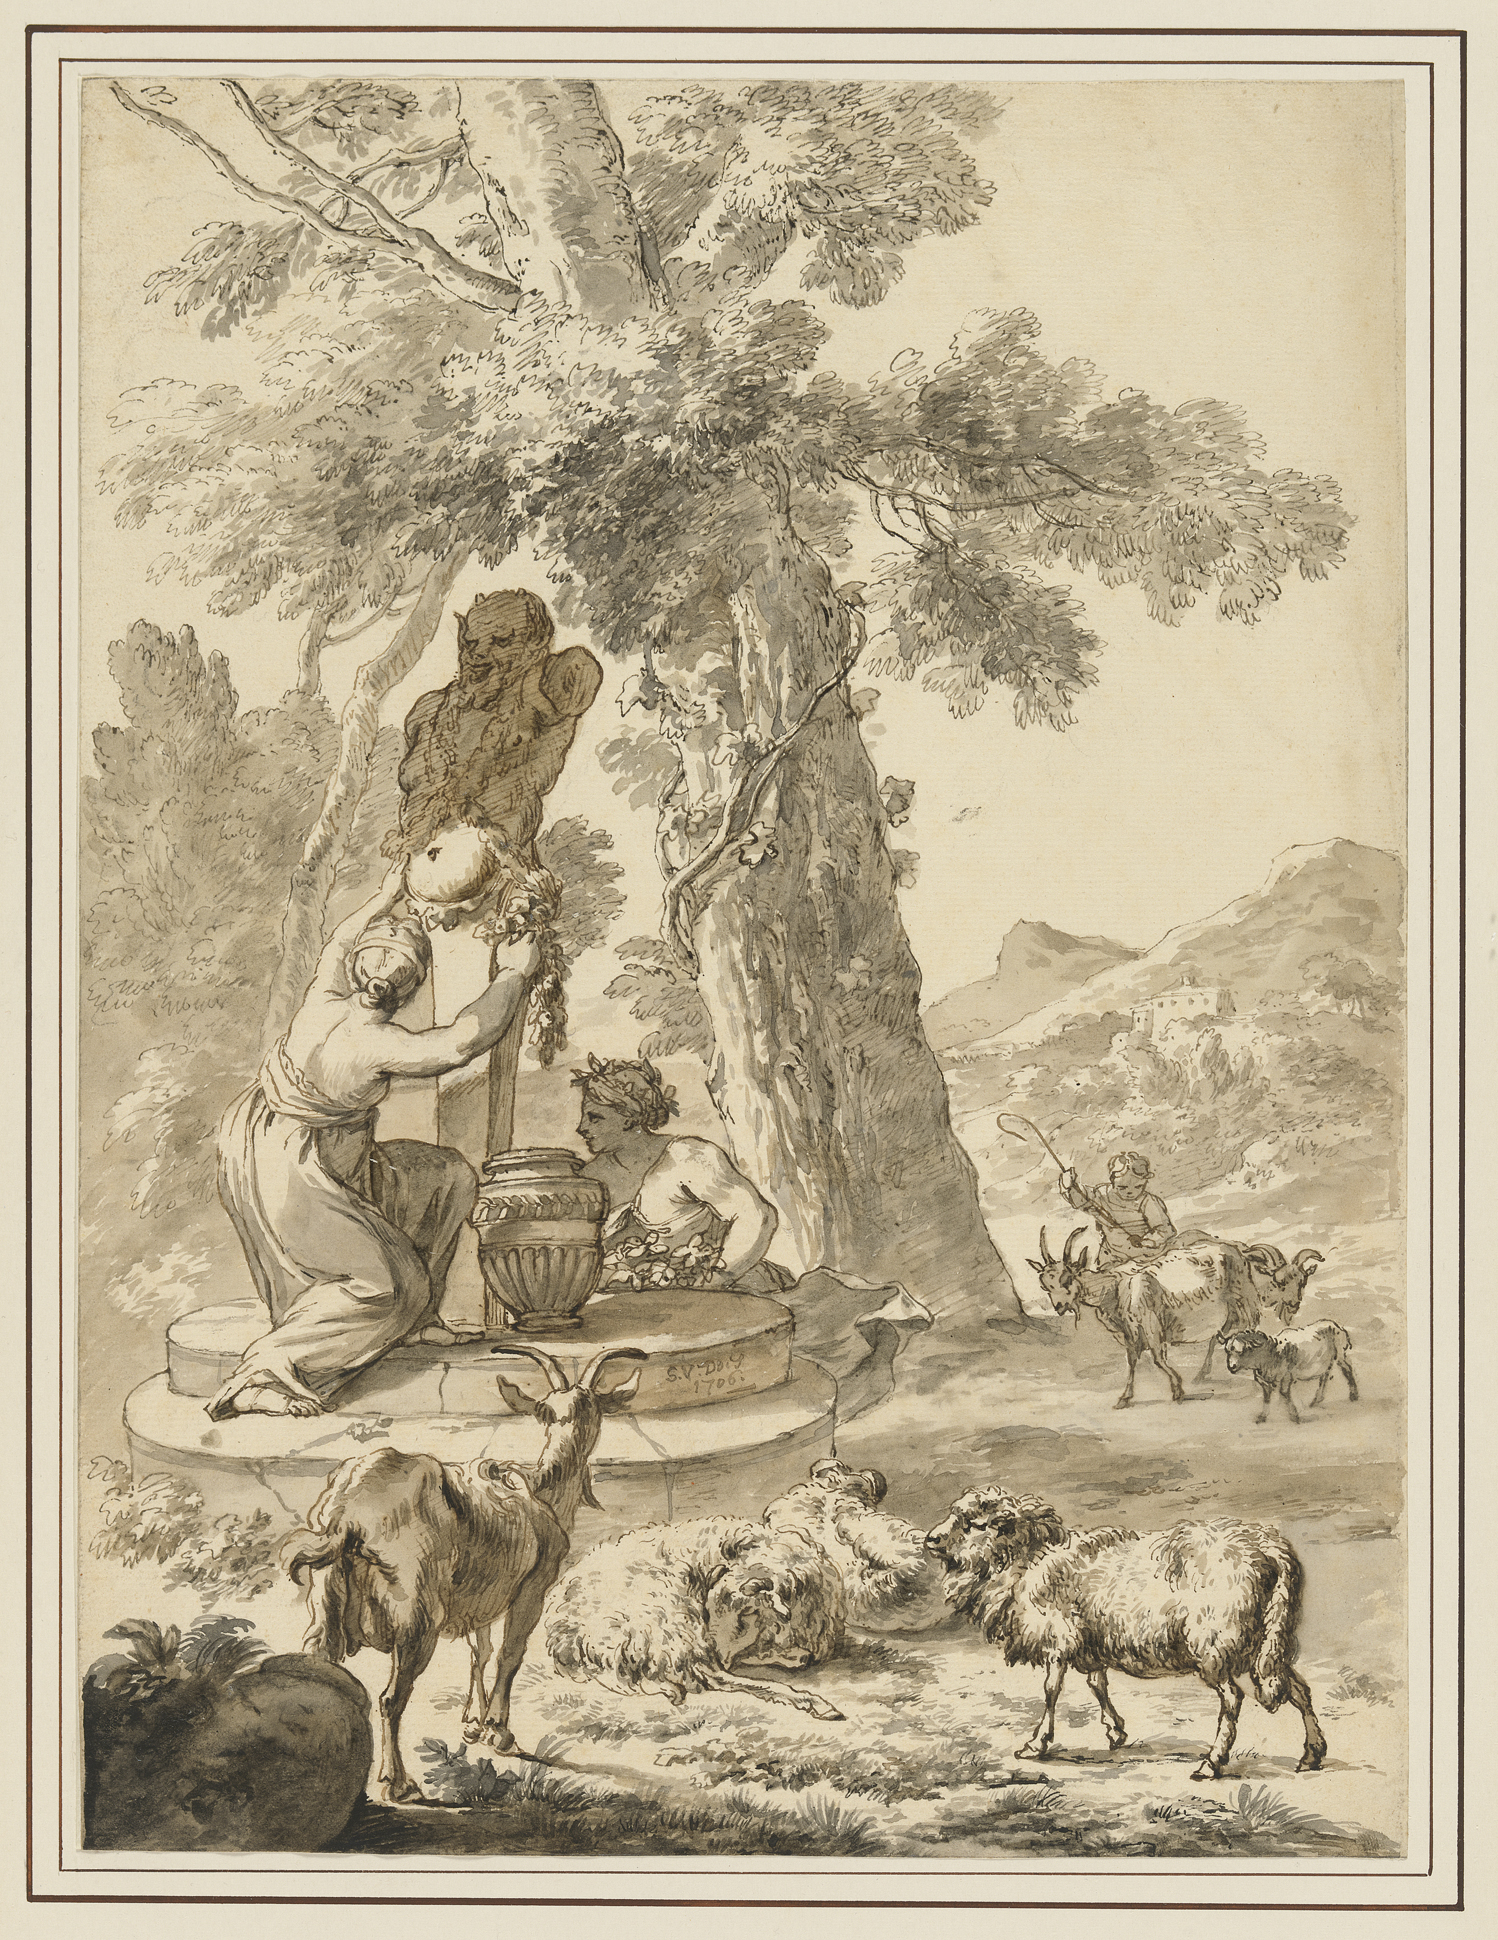 Fig 4. Simon van der Does (1653-1718), Landscape with a Woman in an Antique Gown Adorning a Statue of a Satyr with Garlands, 1706, inv. 4060/1052